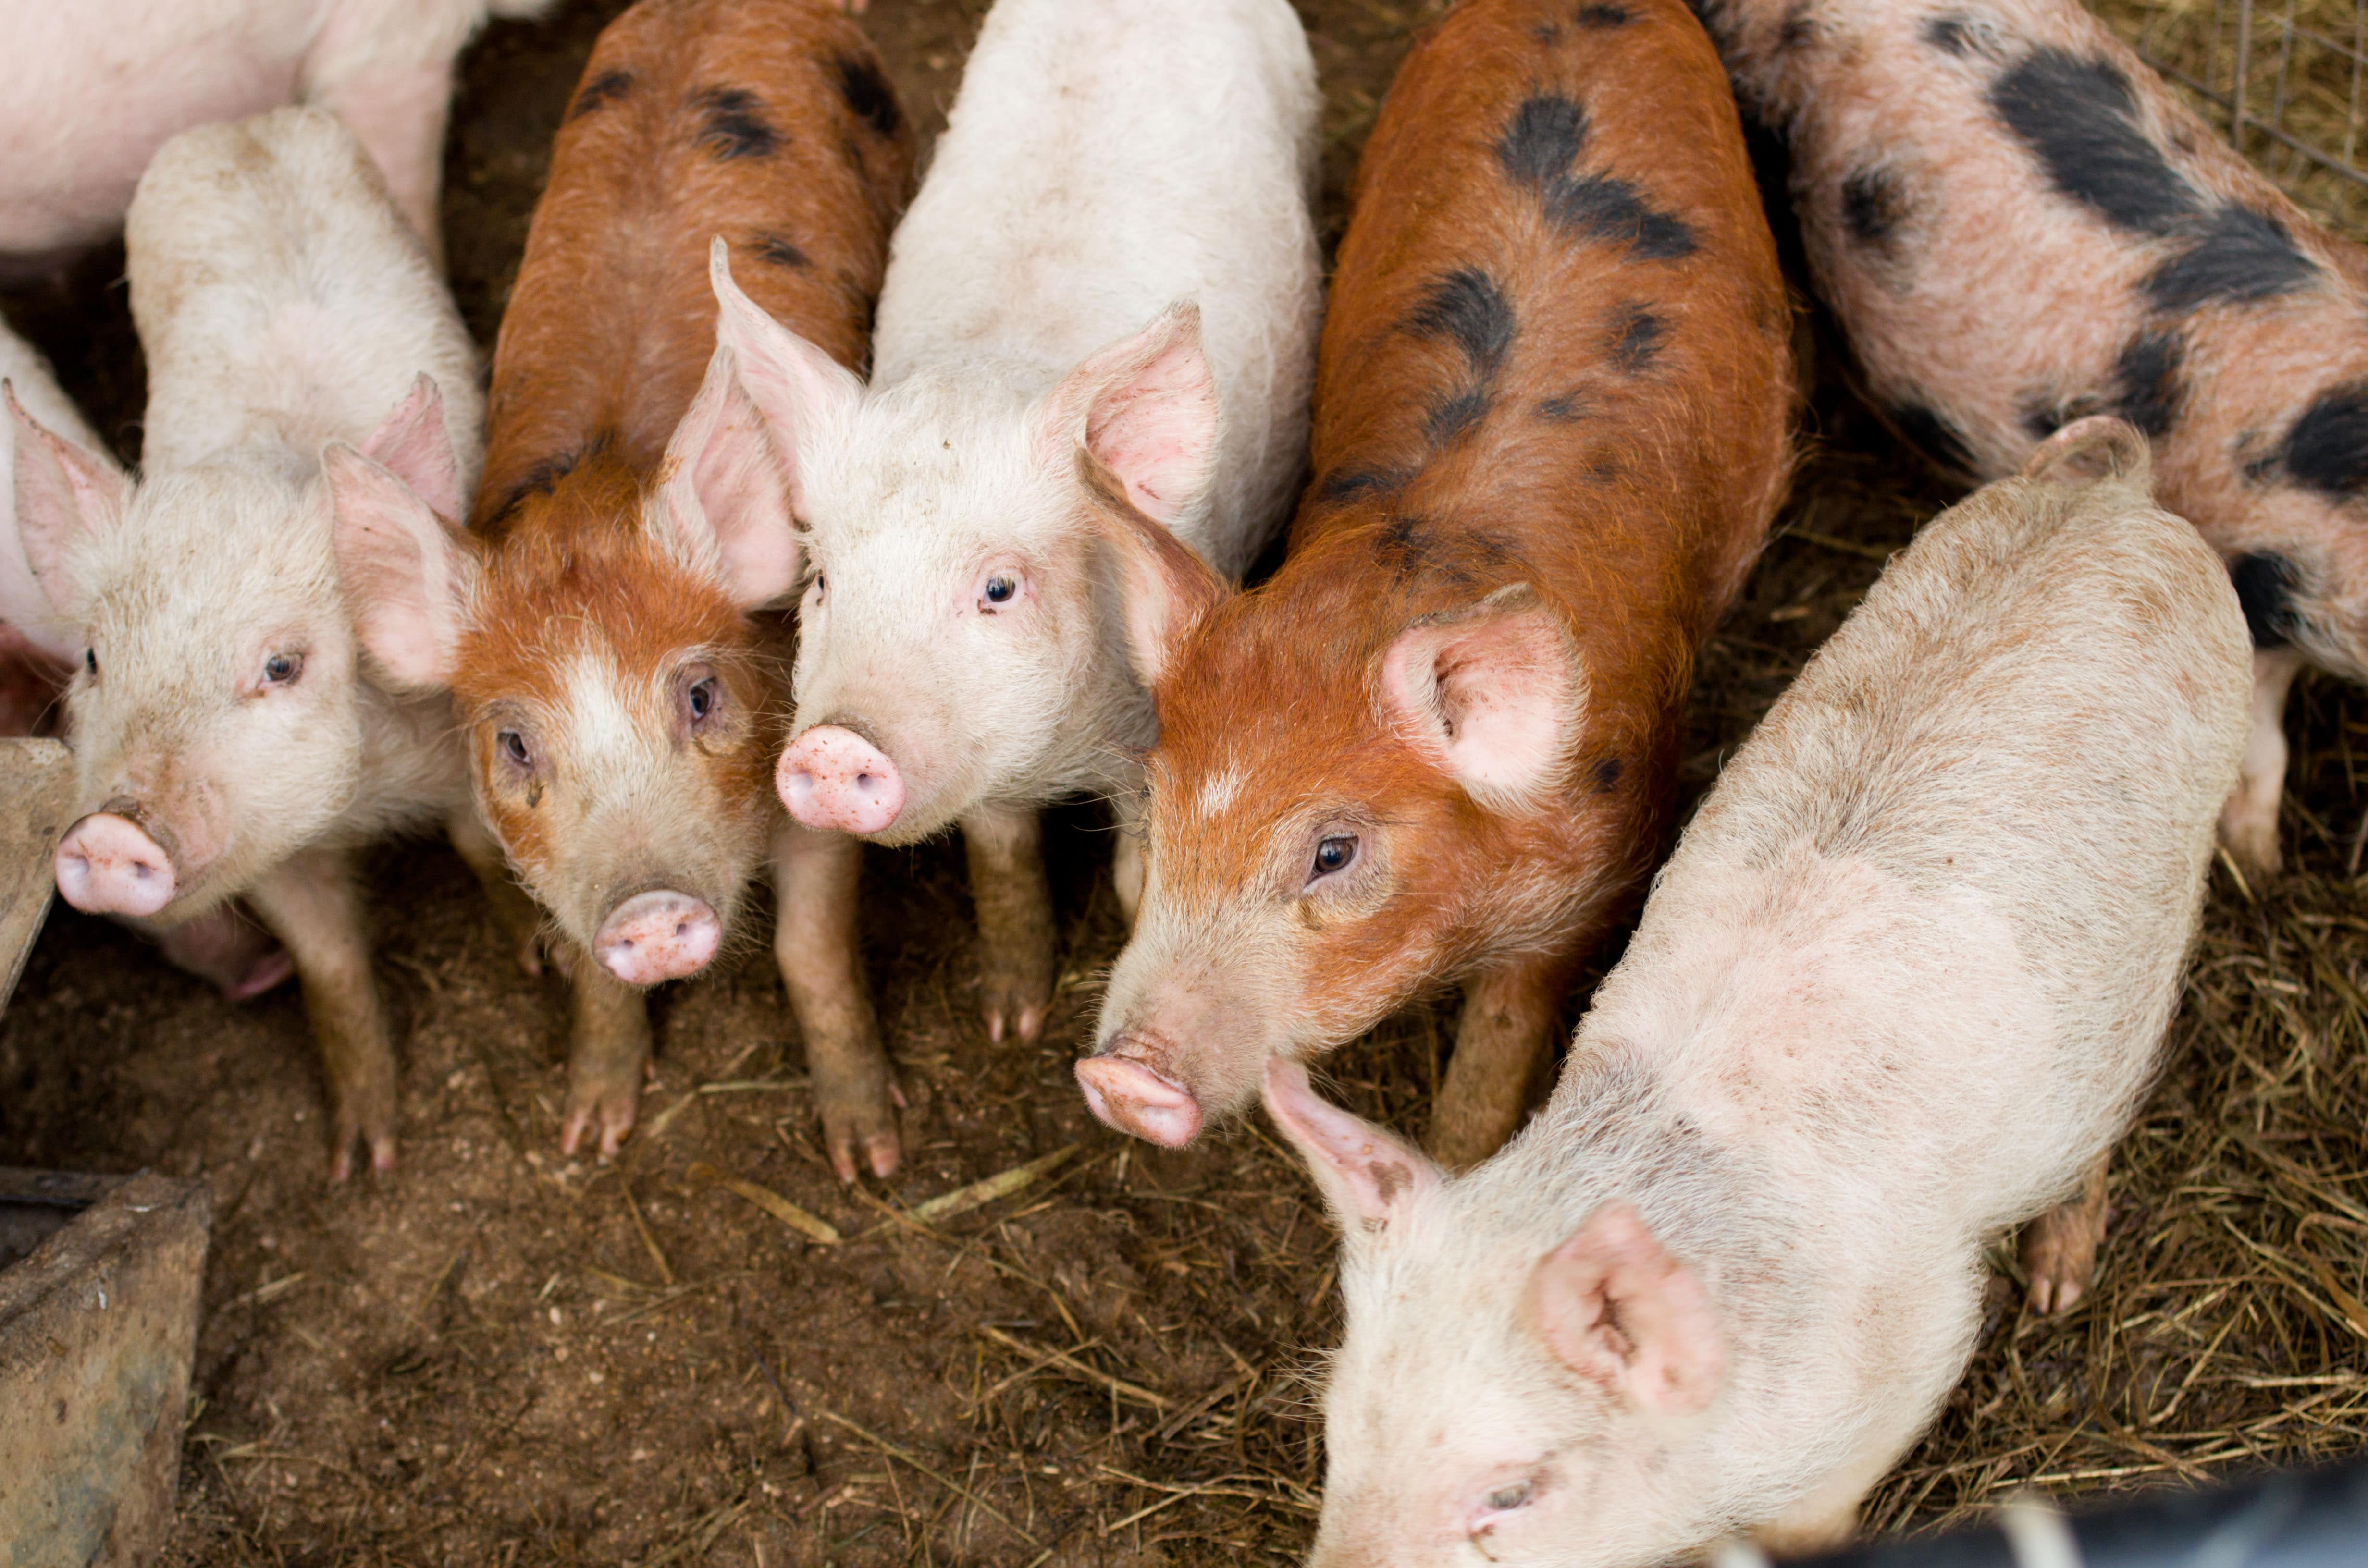 on farm pork credit Cindy Kunst and The Ethical Meat Handbook-min